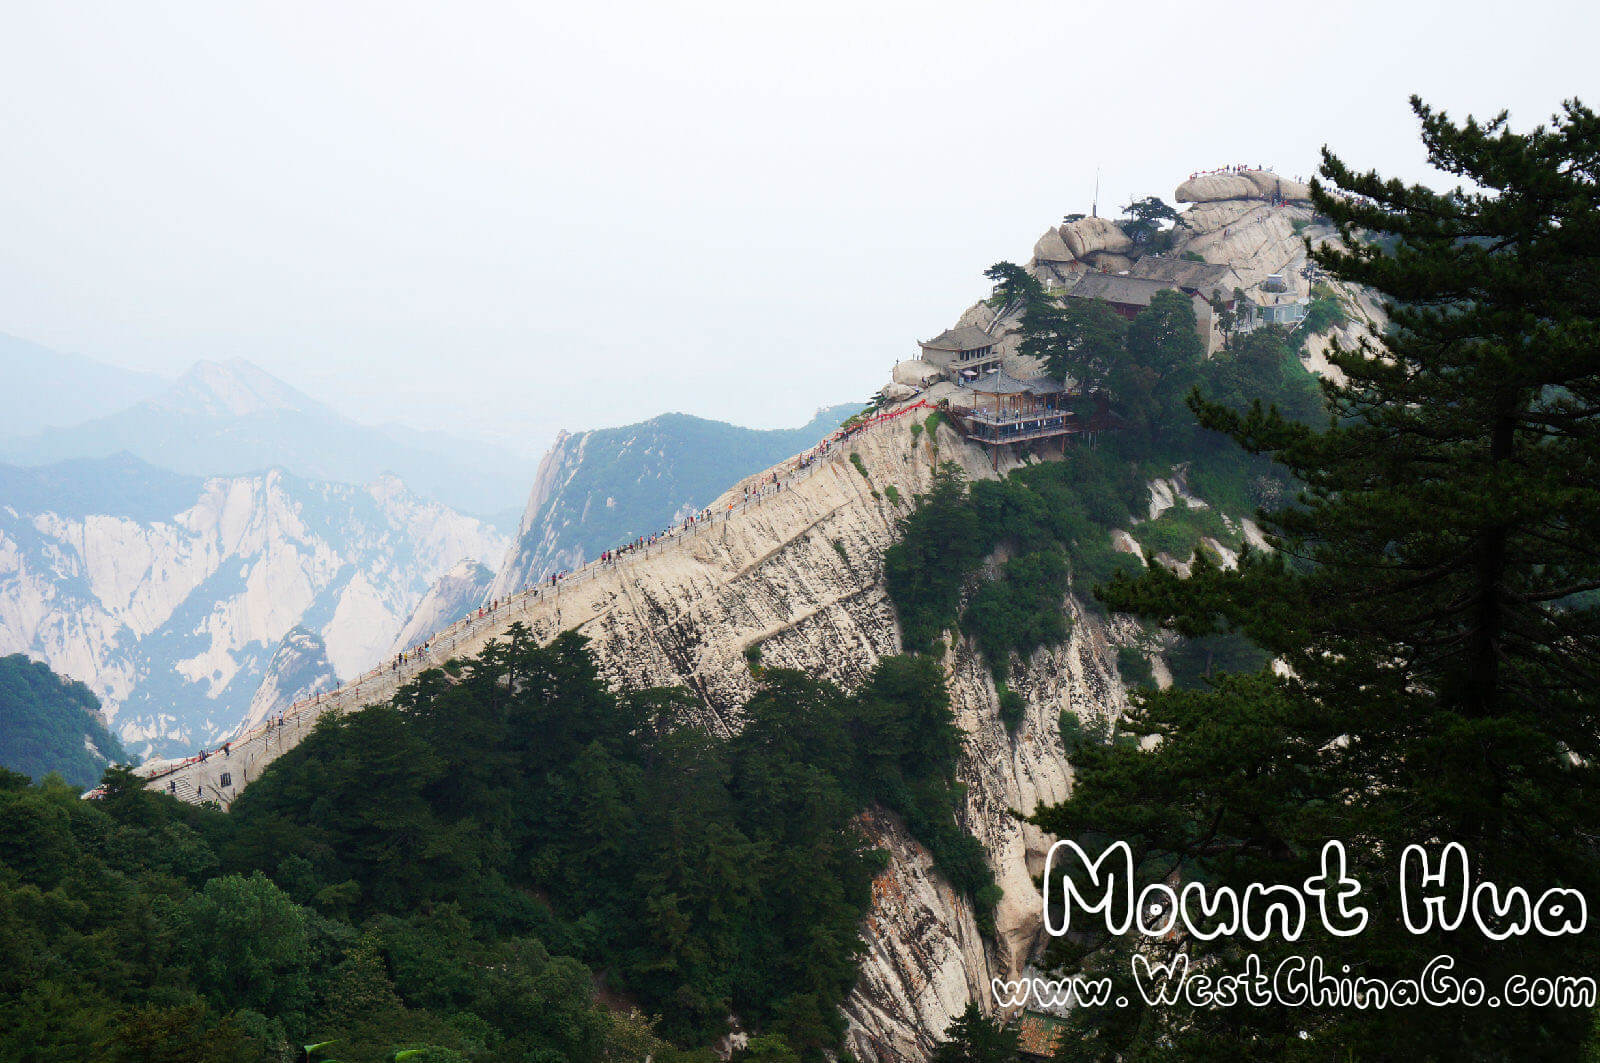 Mount Hua tour